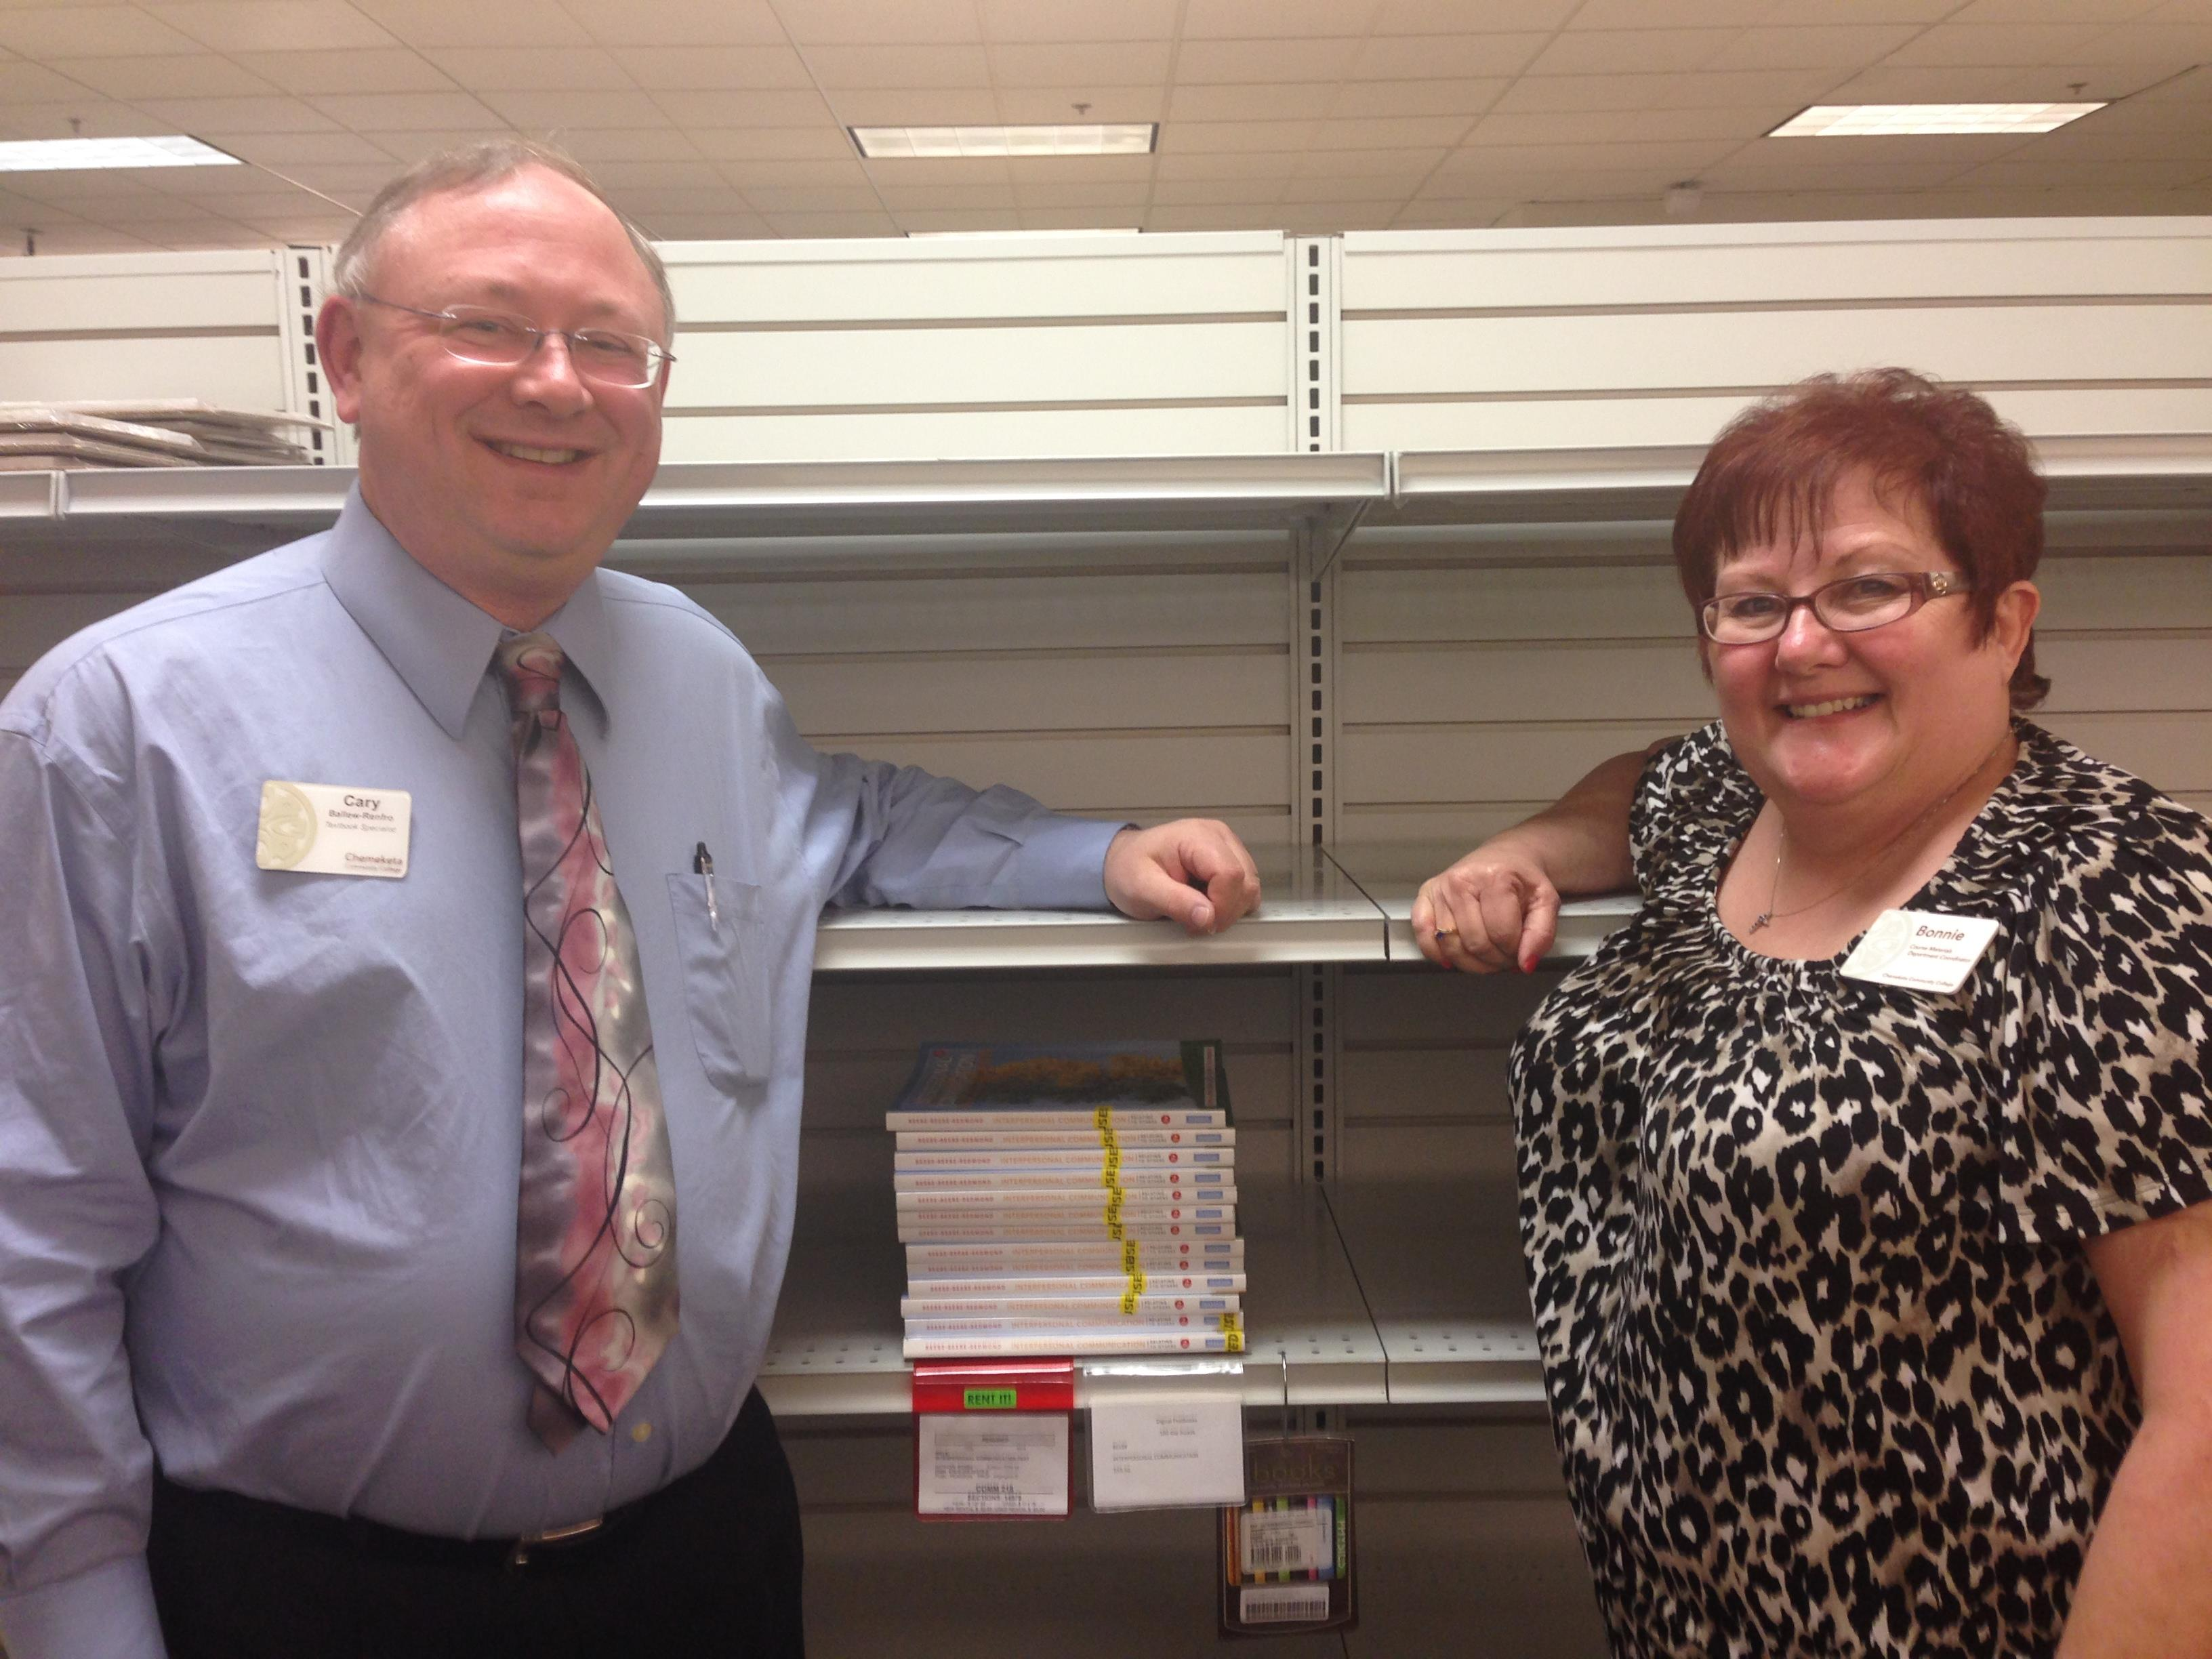 Cary Ballew-Renfro, Textbook Assistant, (left) and Bonnie Perry, Textbook Coordinator, show off the shelf talkers they credit with increasing ebook and rental sales.